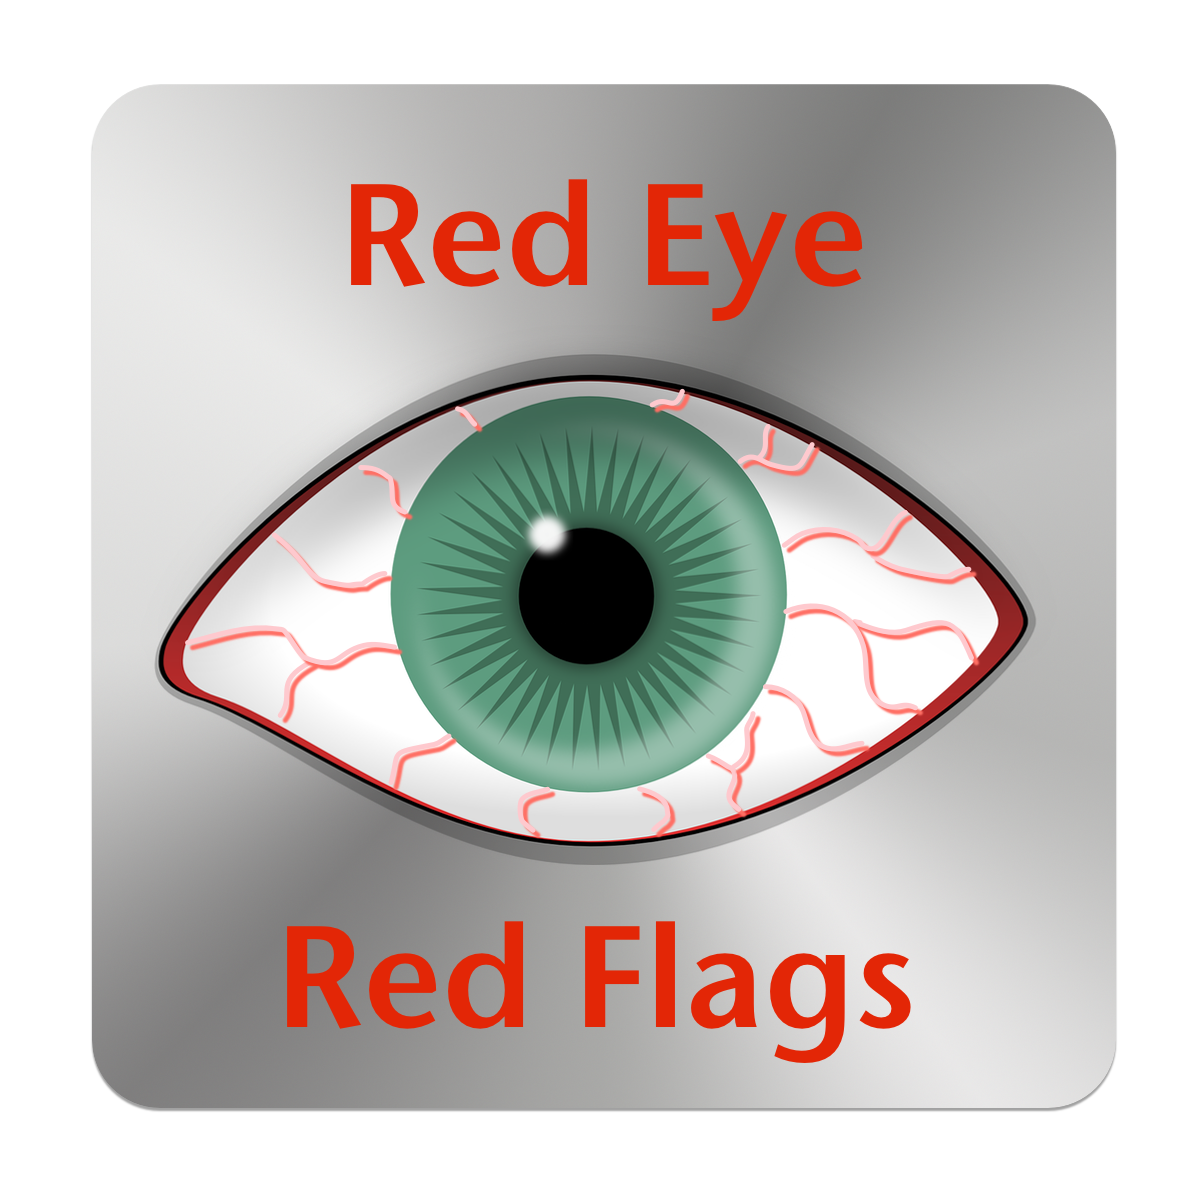 Red Eye Red Flags App